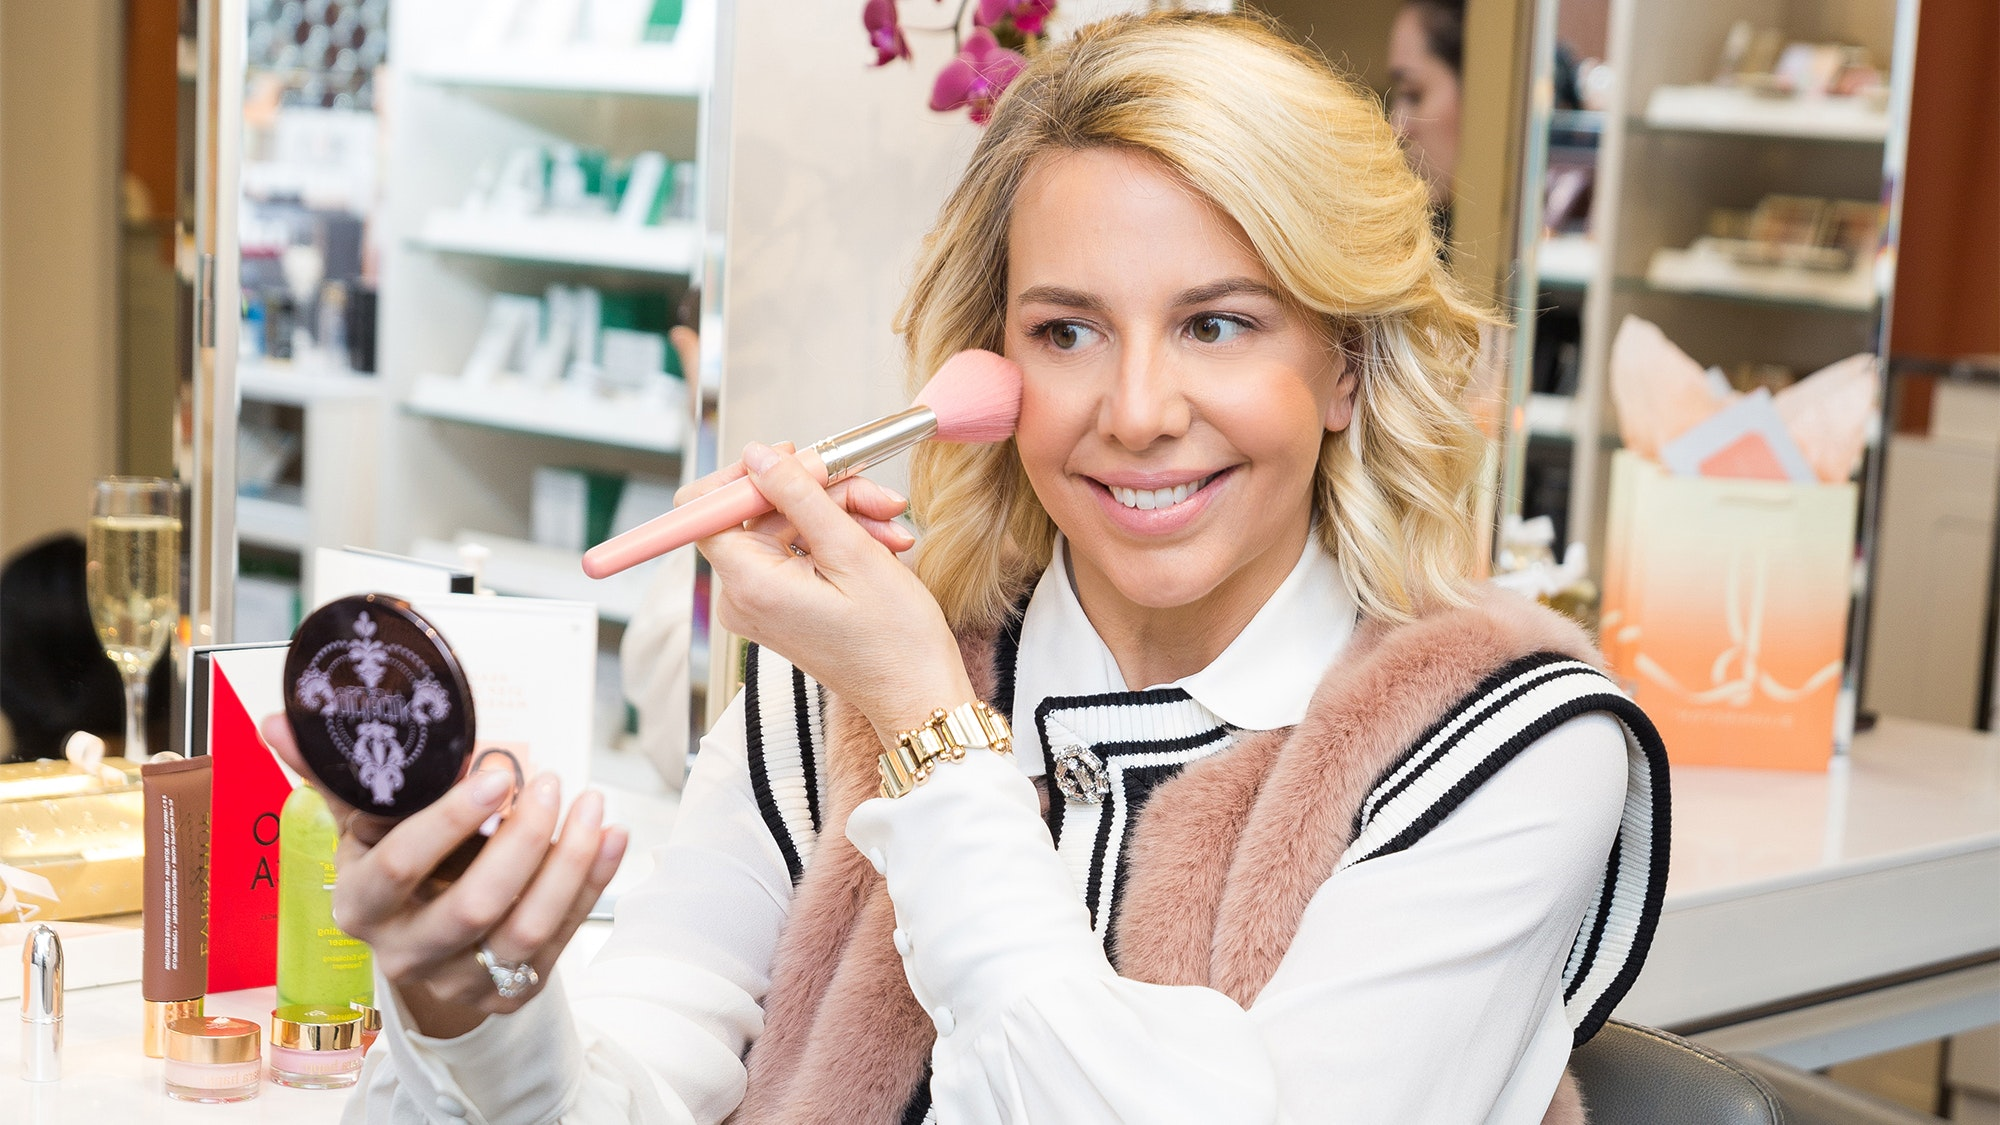 How Blushington CEO Natasha Cornstein Transitioned From a Career In Politics to Beauty